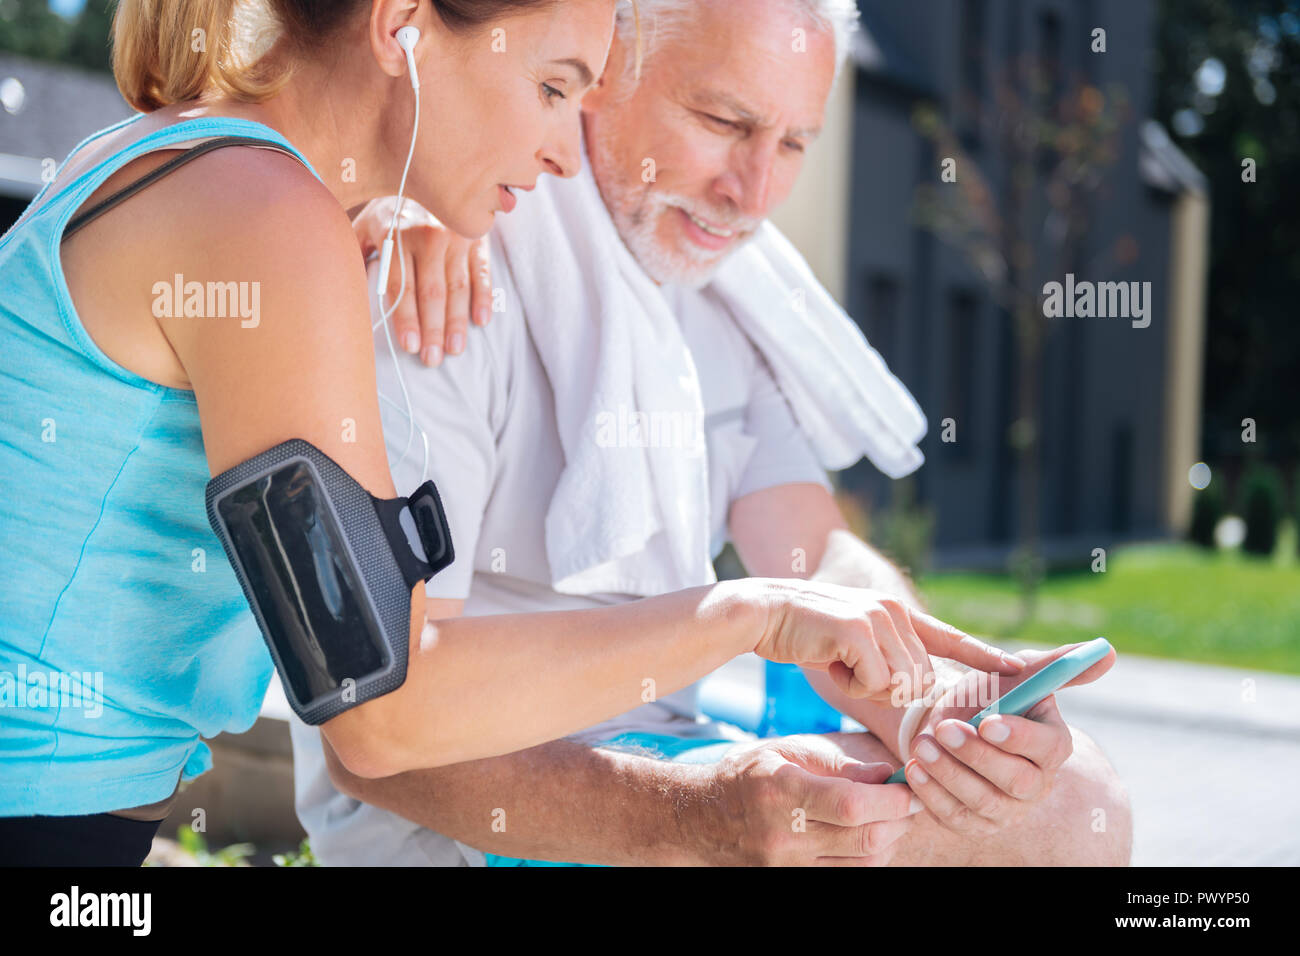 Couple of managers of world company checking work e-mail on phone together Stock Photo